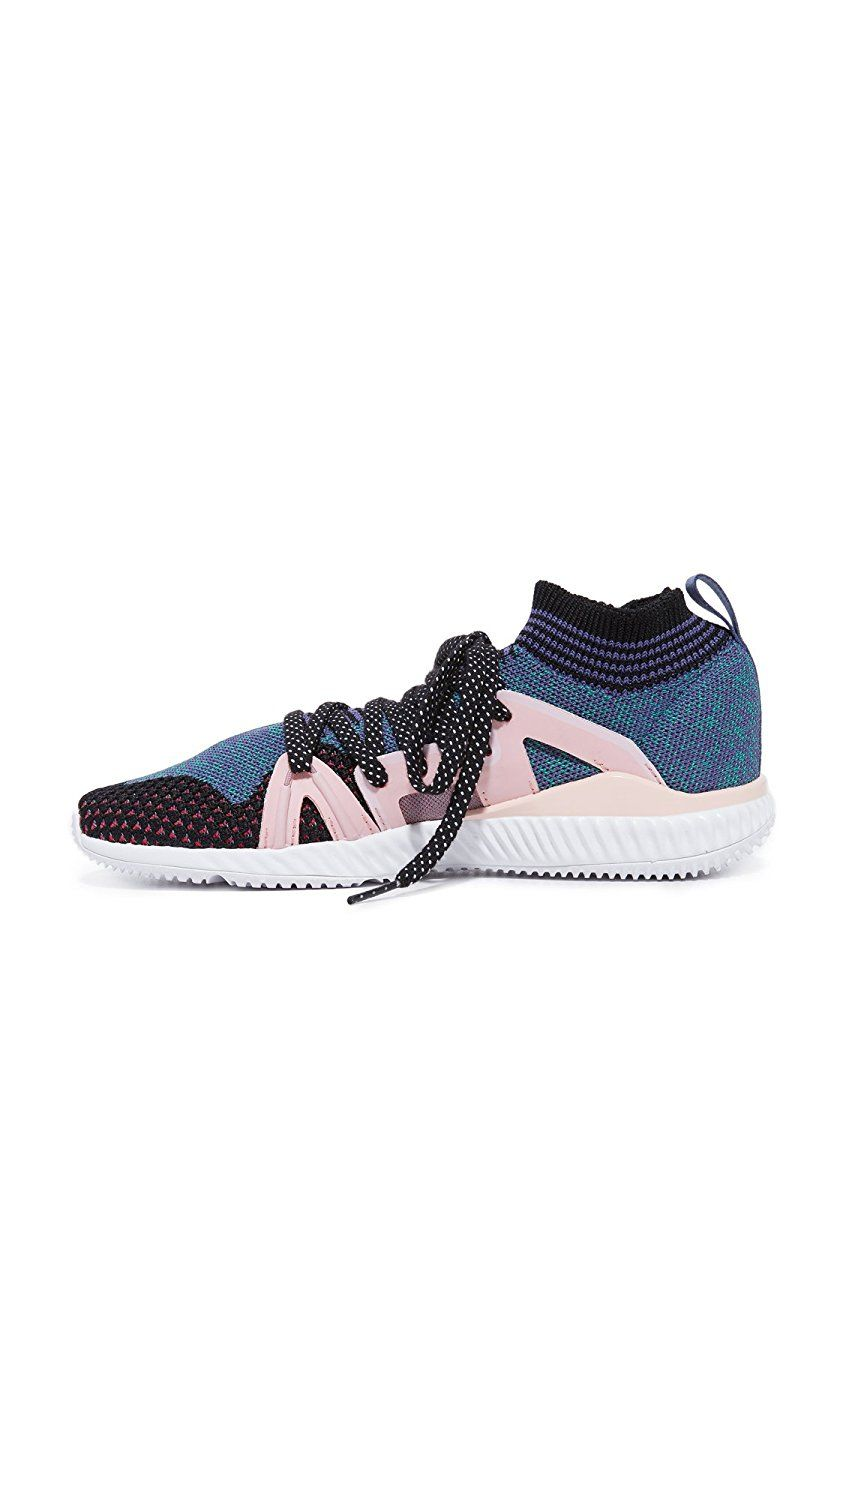 8ae421d1f adidas by Stella McCartney Women s Crazymove Bounce Sneakers